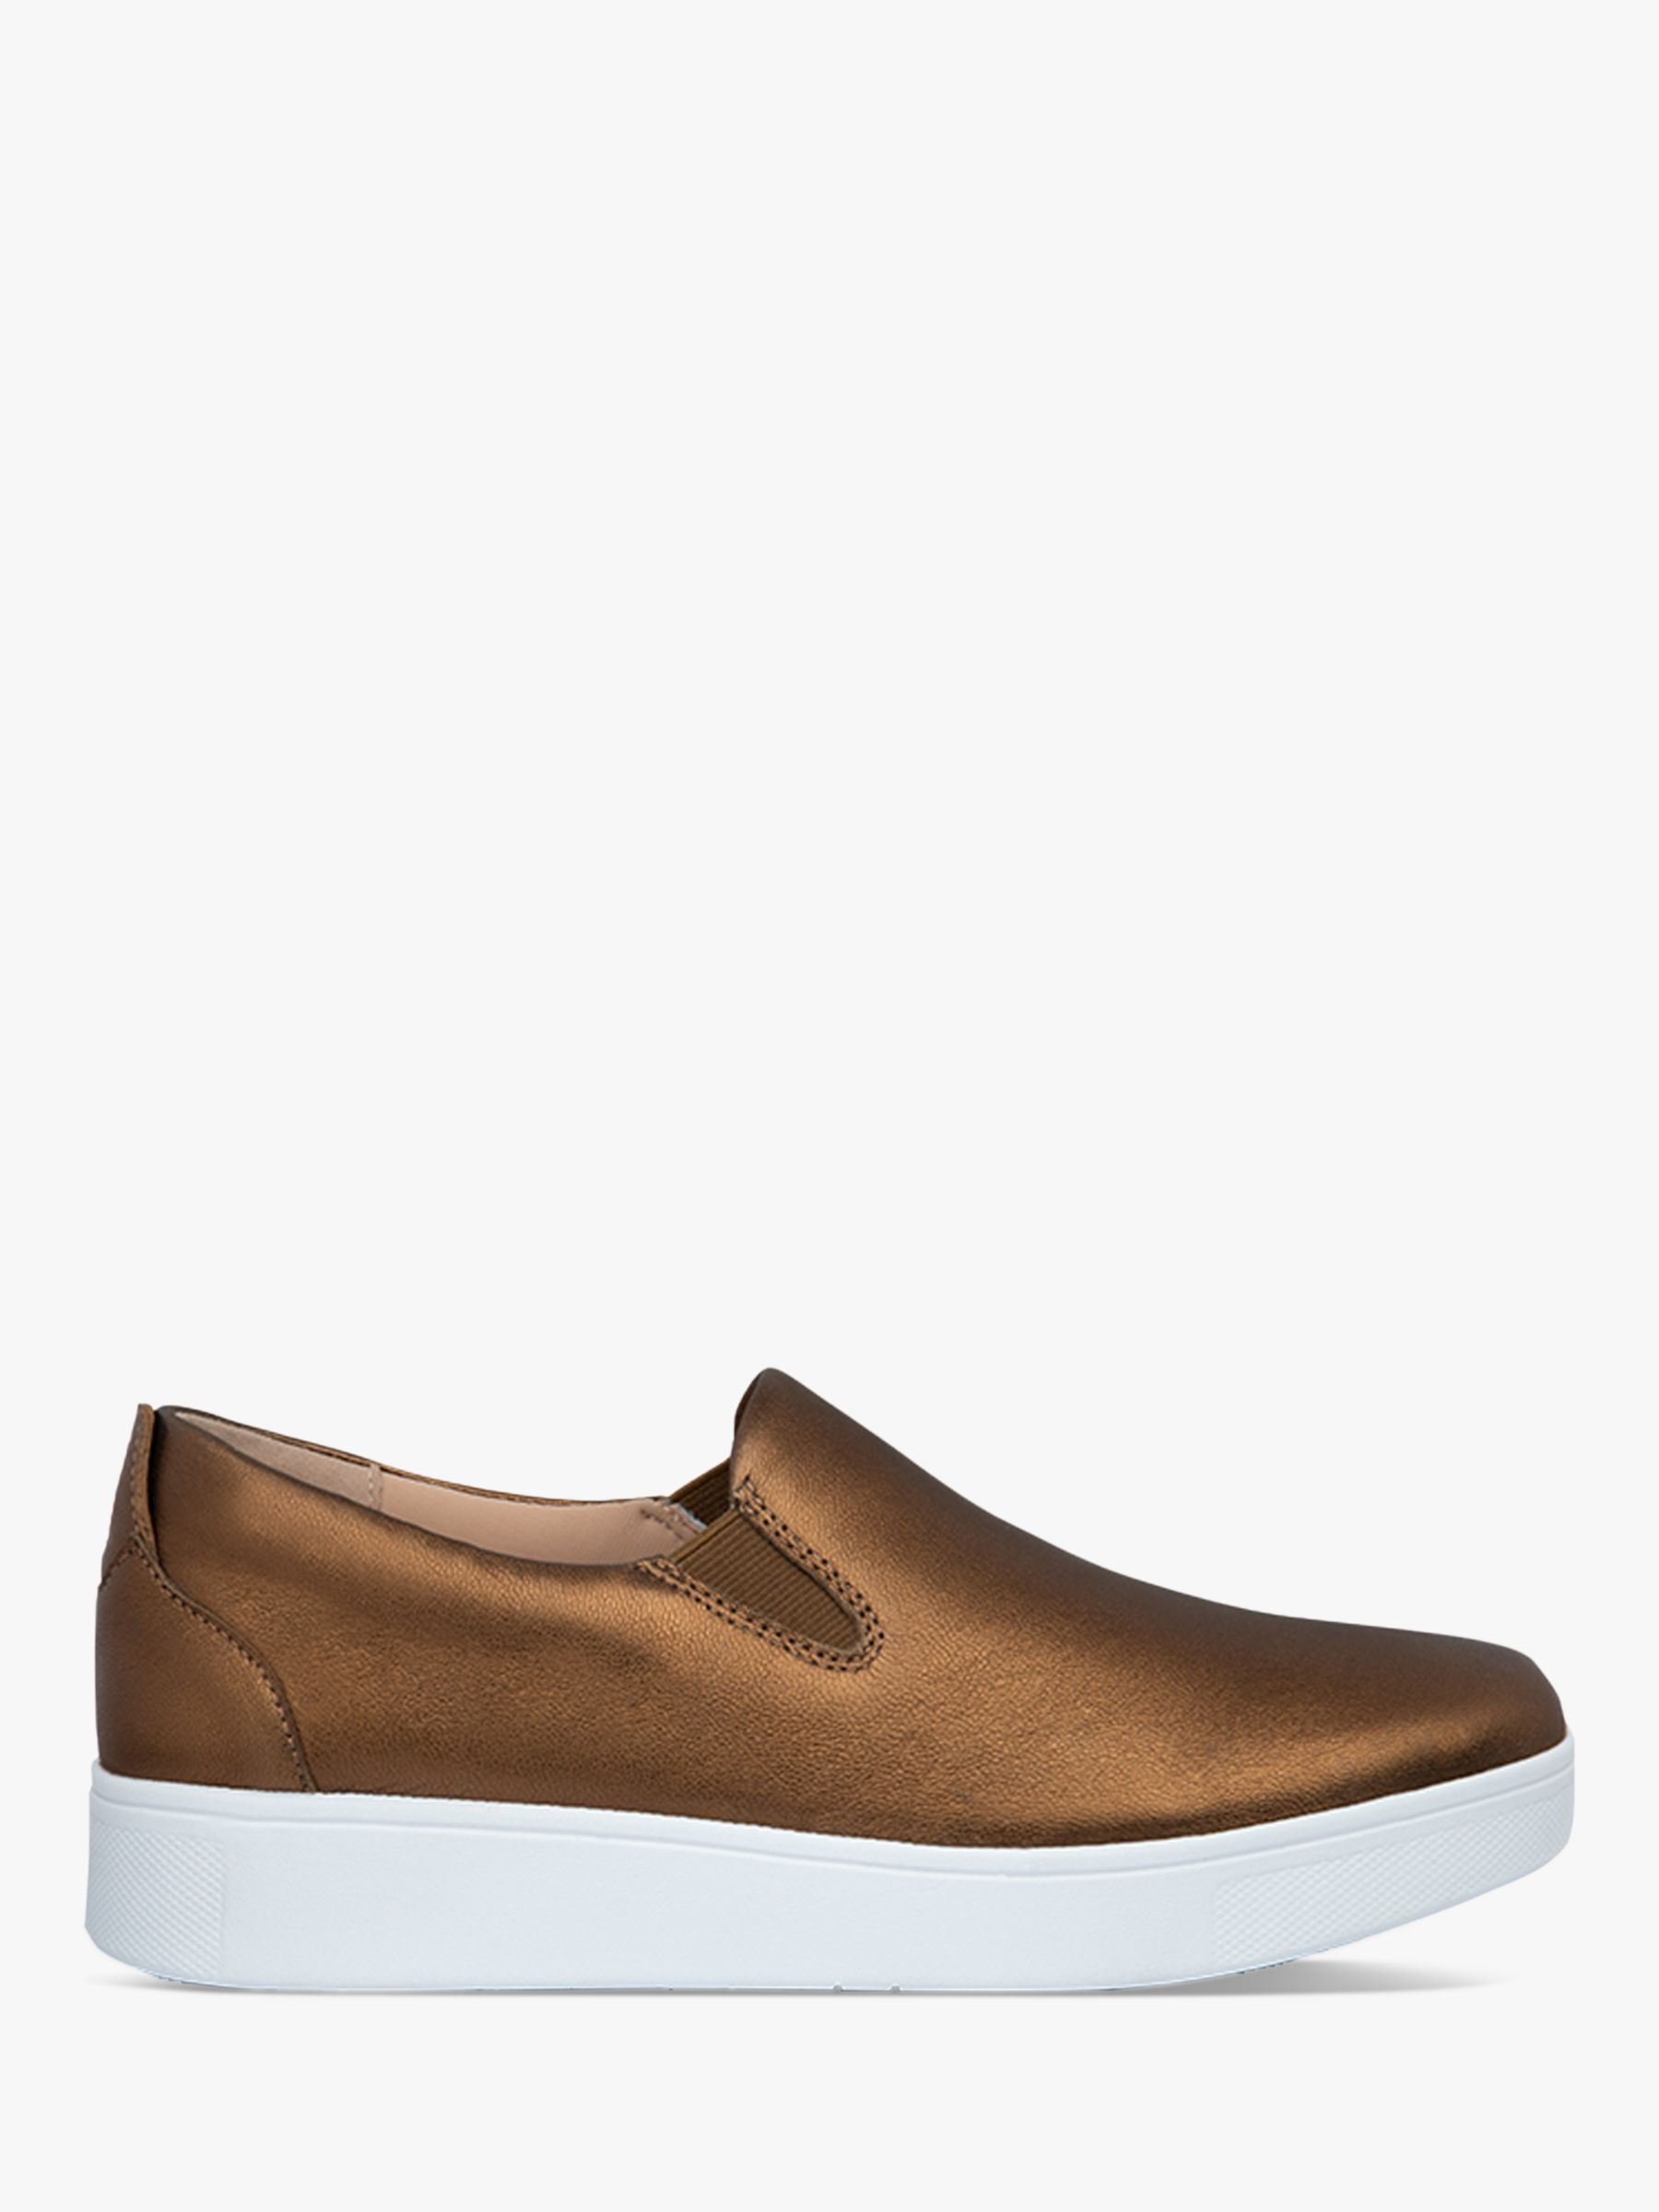 Fitflop FitFlop Sania Leather Flatform Slip On Trainers, Bronze